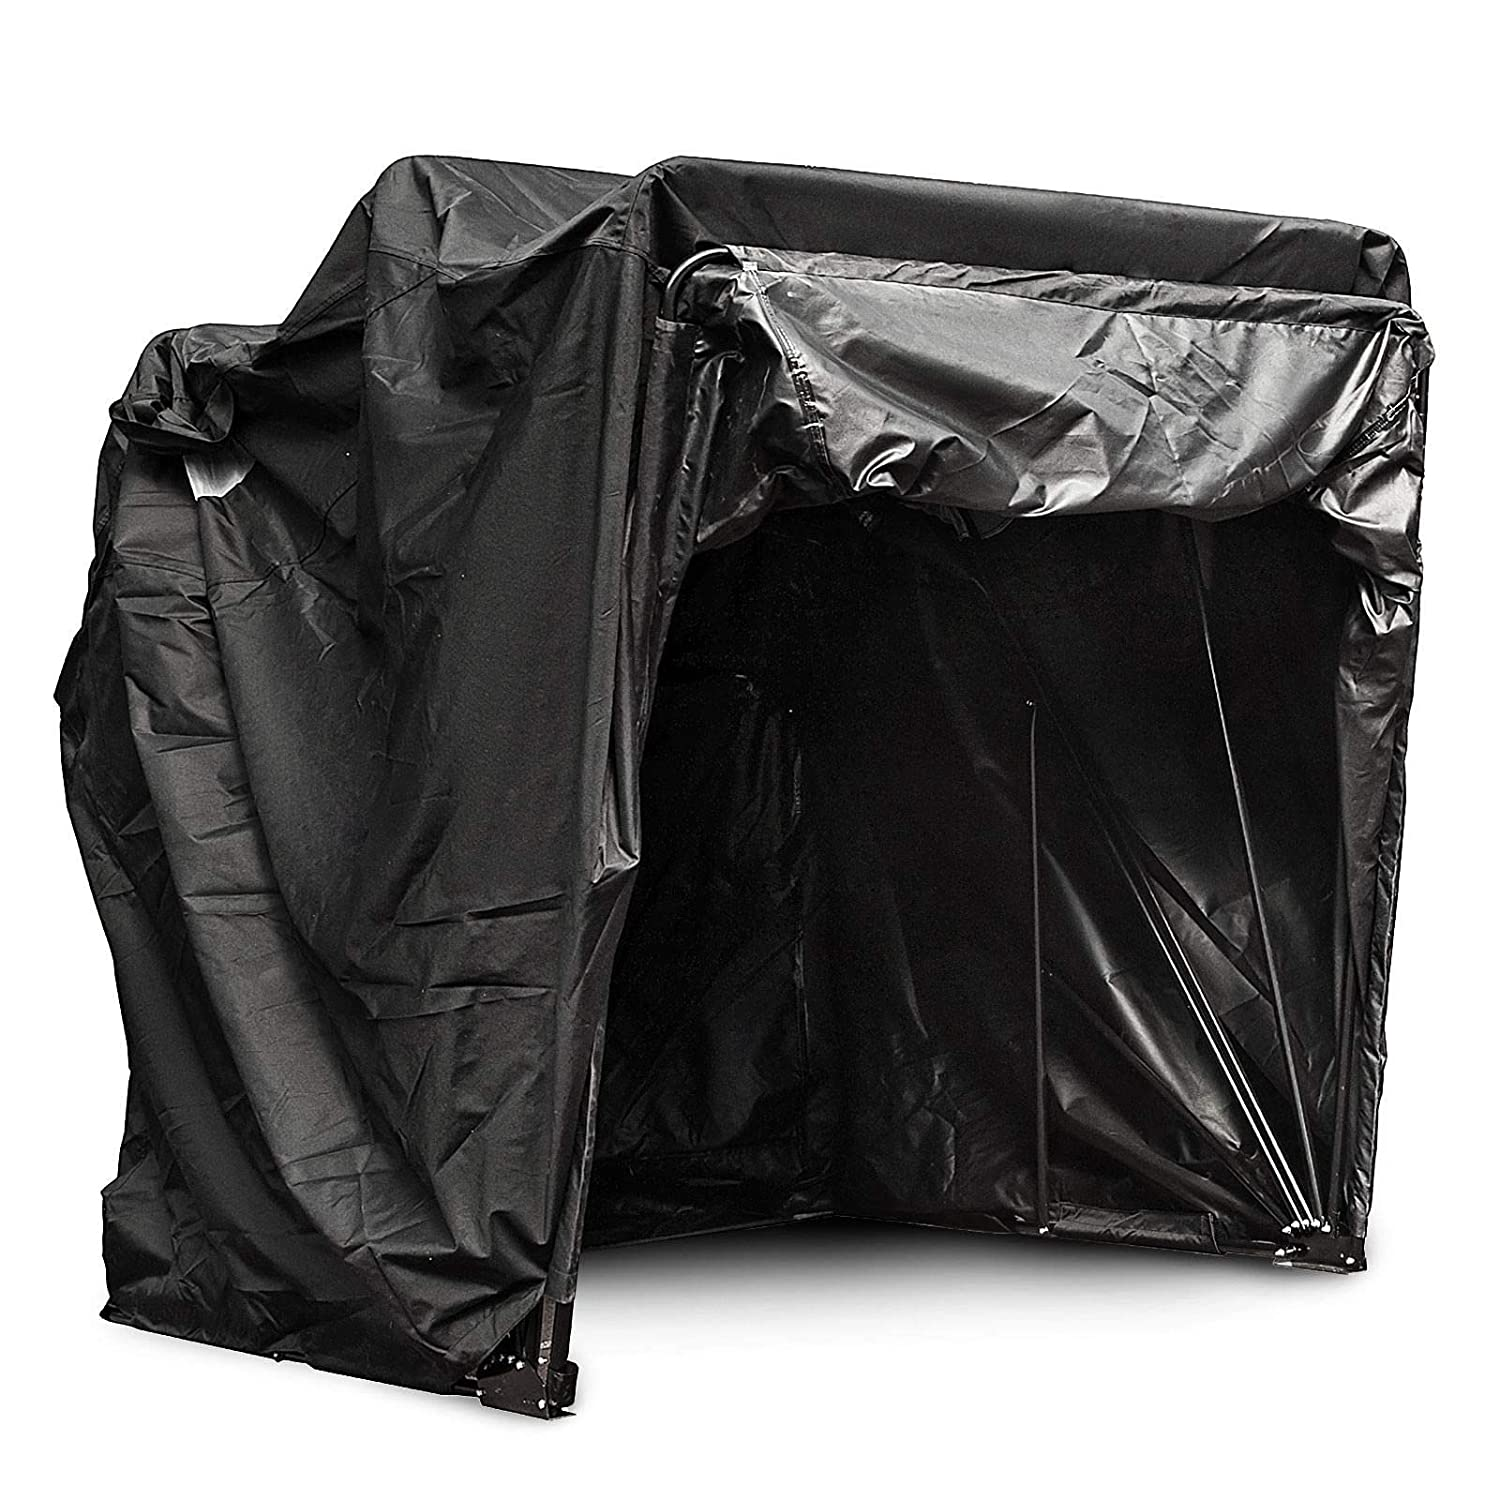 Motorbike Bike Shelter Mobility Scooter Large Waterproof Motorcycle Cover